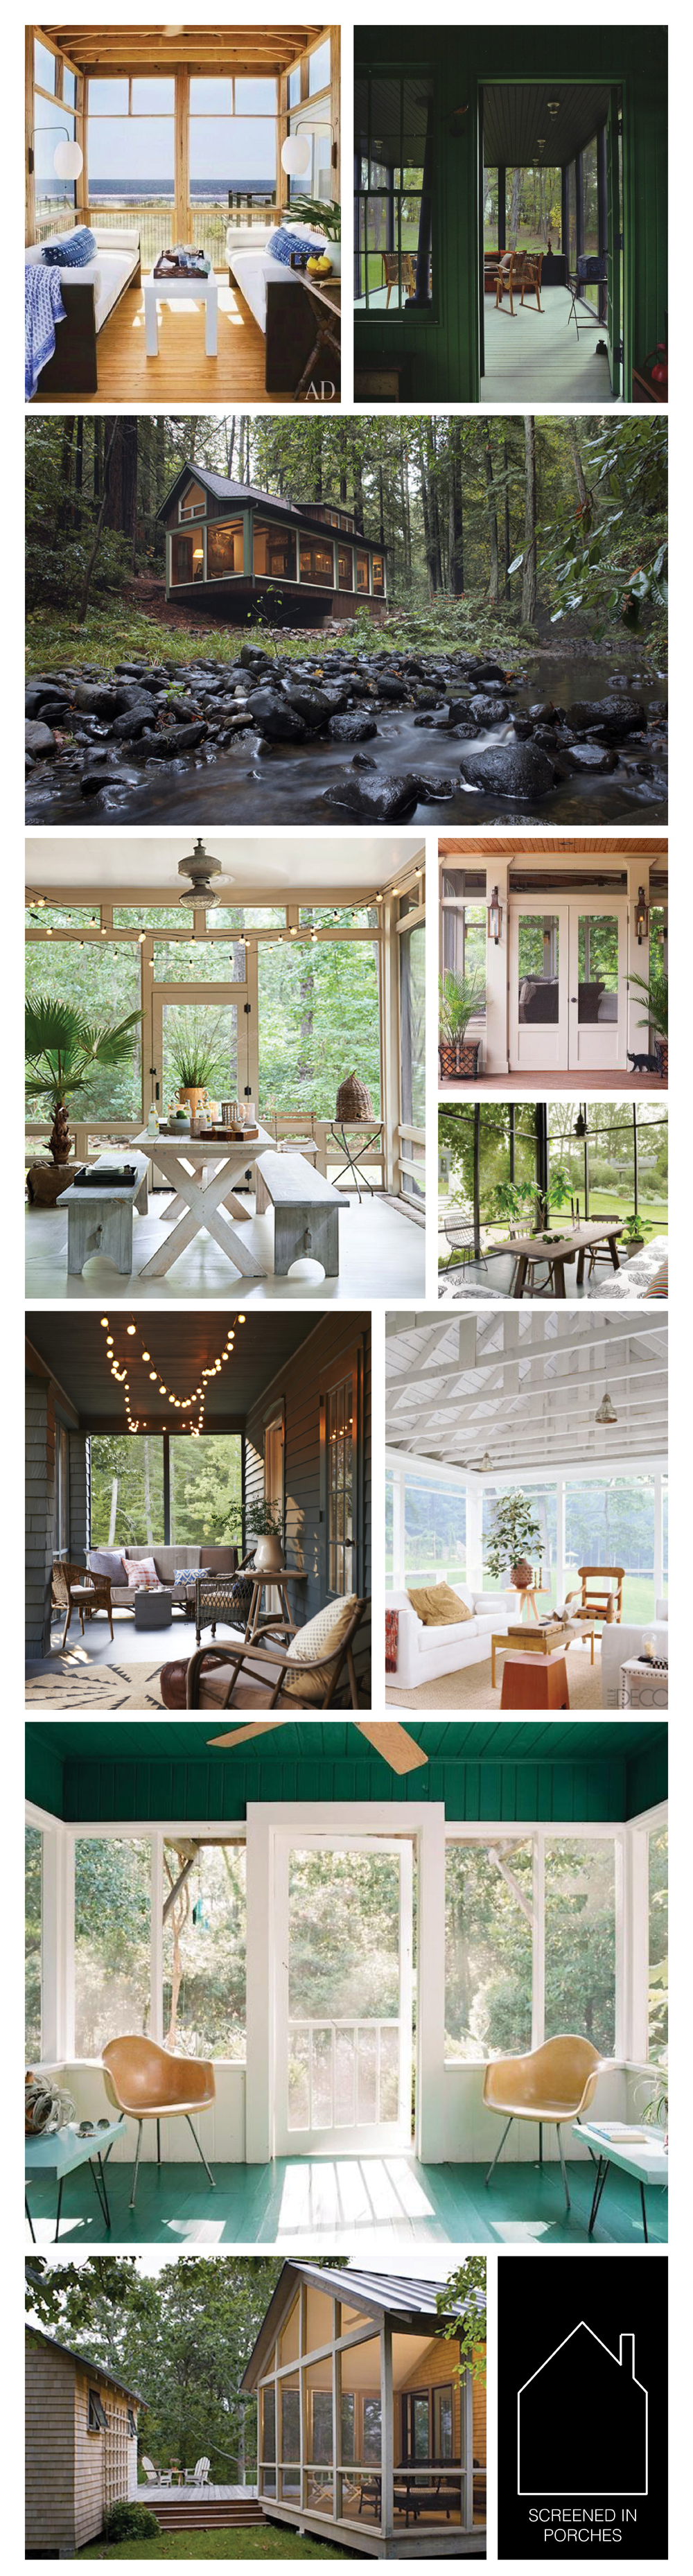 from top left - via Architectural Digest - via REMODELISTA - photo by Amy A. Alper via Off Grid World - via Country Living - double porch in Nashville via Houzz - Susan Hable Smith's Georgian home via Elle Decor - design by Country Living via Jersey Ice Cream Co. - via Elle Decor